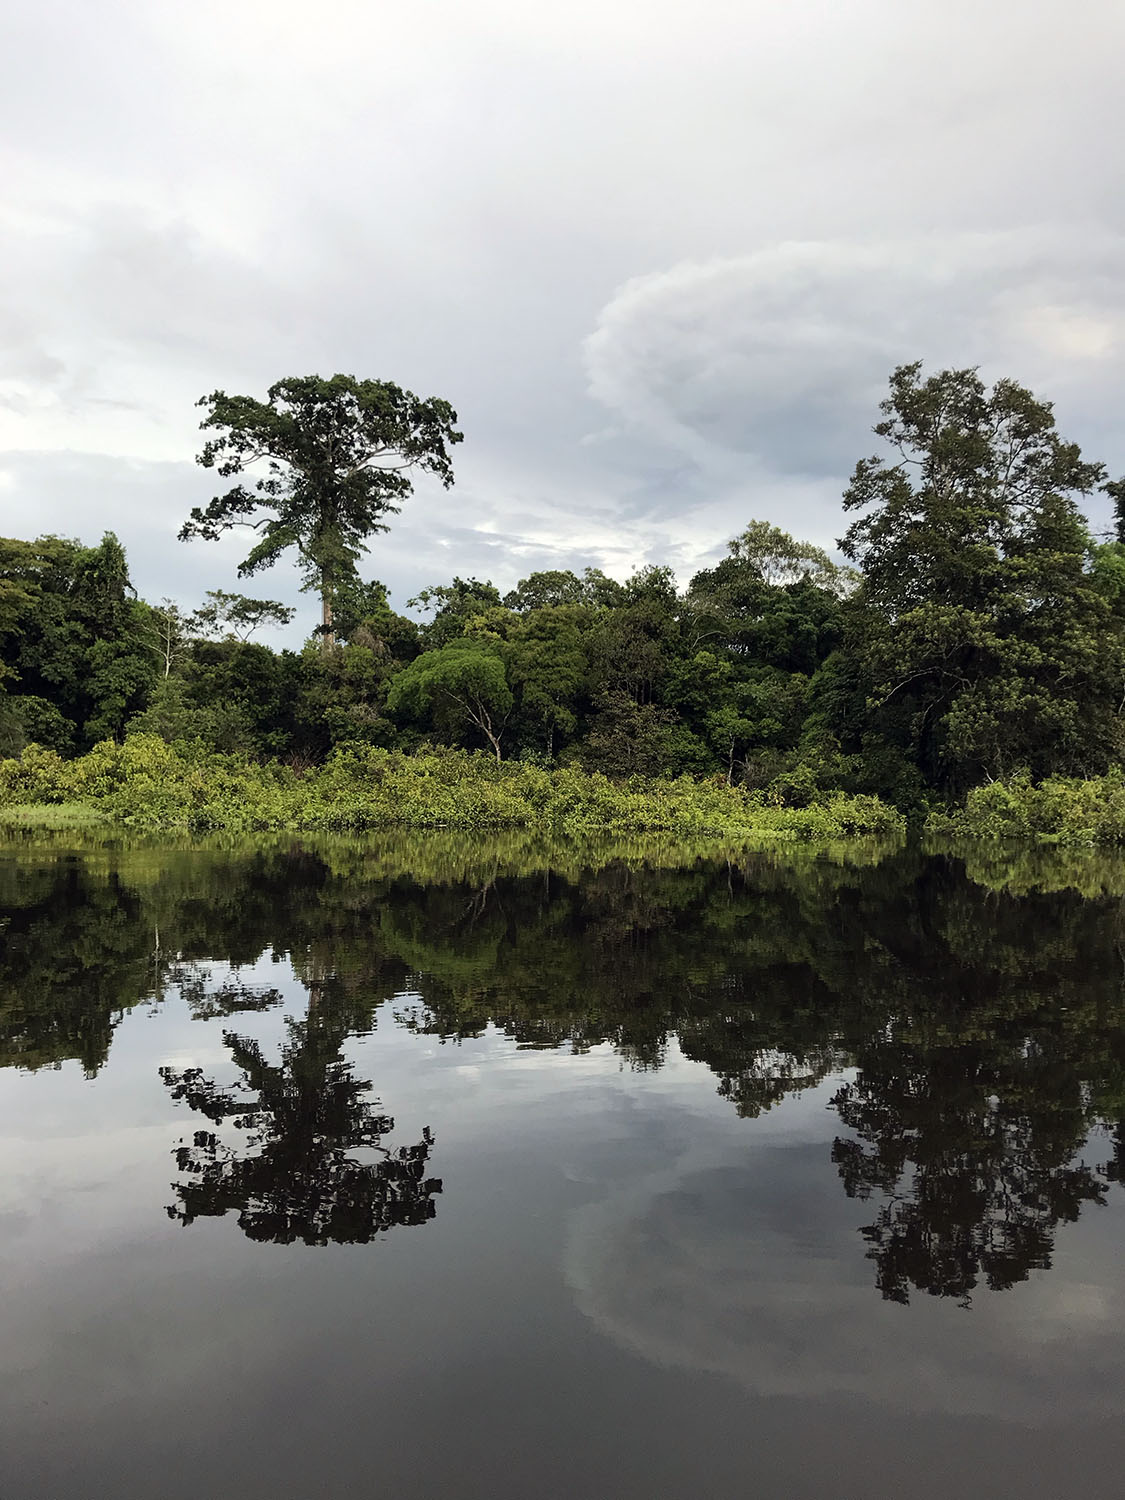 more green islands and beautiful skies reflecting on the amazon river lake